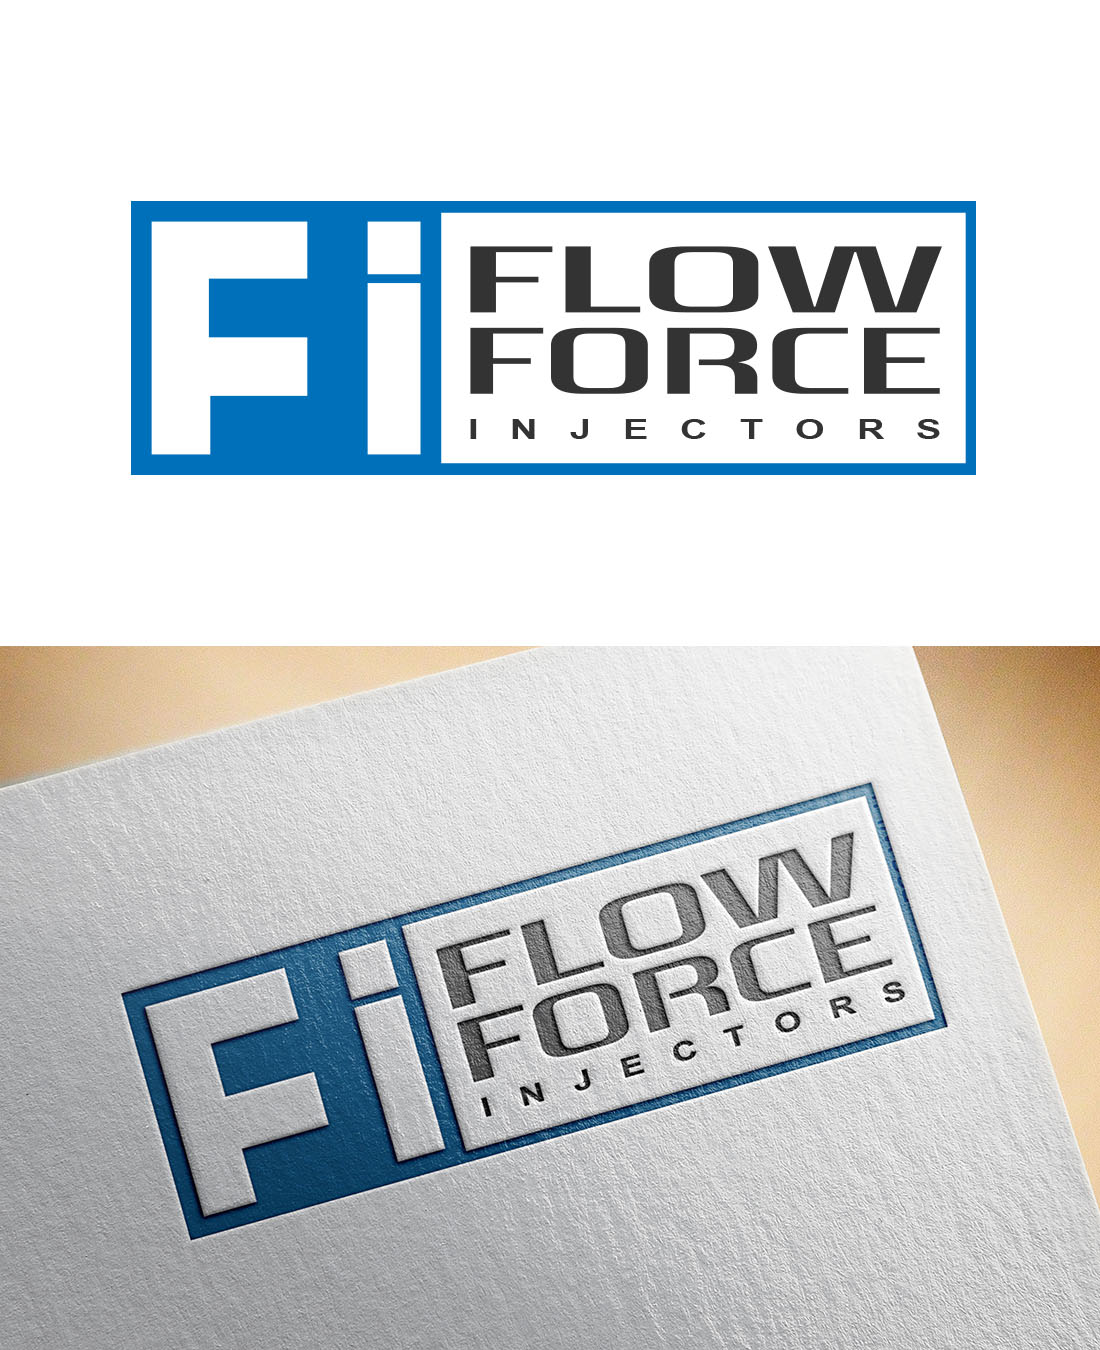 Logo Design by Wilfred Ponseca - Entry No. 20 in the Logo Design Contest Fun Logo Design for Flow Force Injectors.